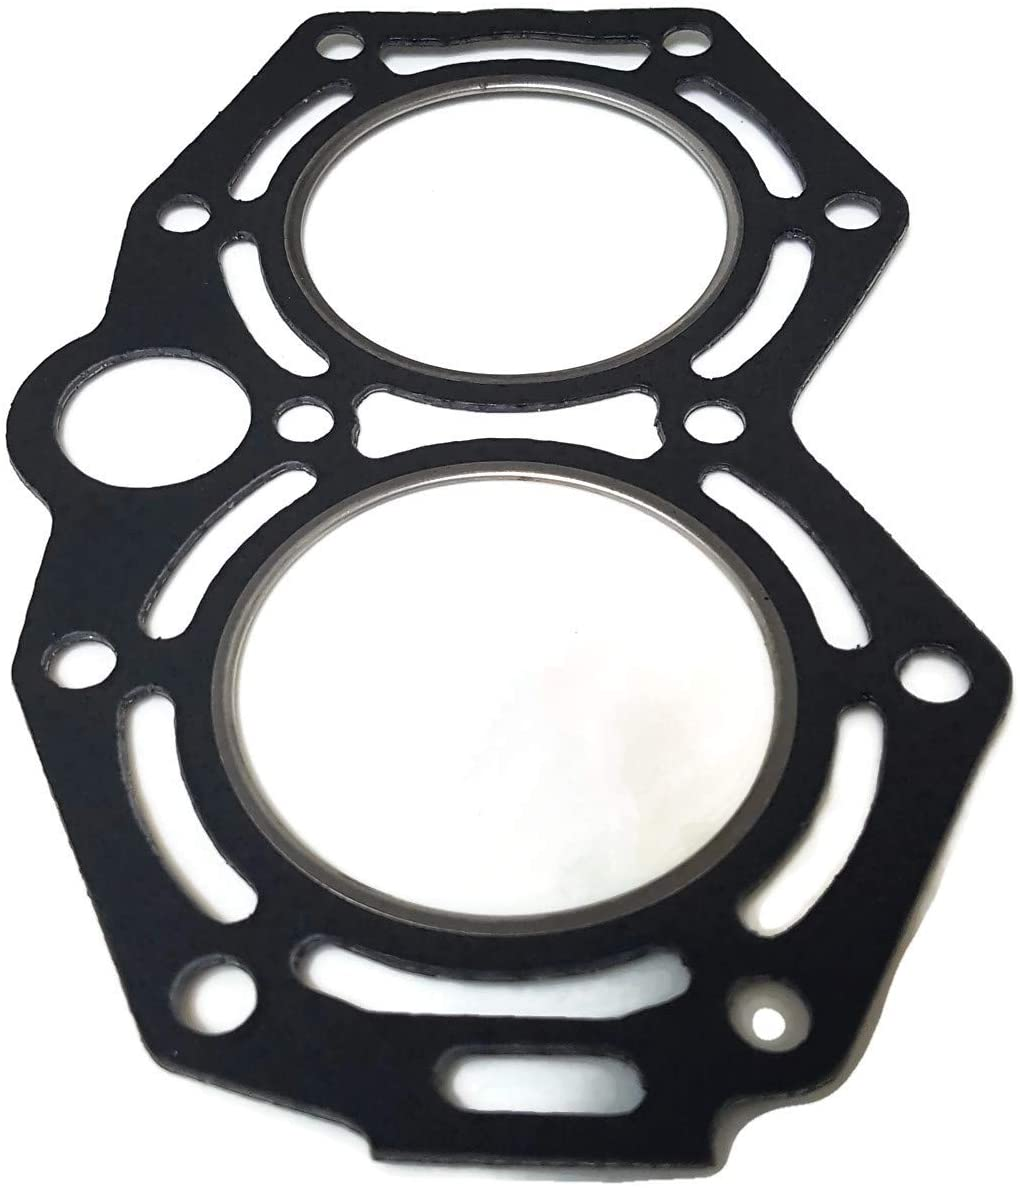 Boat motors Nissan Tohatsu Outboard M NS 25HP 30HP 346-01005-2 1 0M 27-8129391 812939 1 Cylinder Head Gasket Mercury Mercruiser Quicksilver 8129391 Cyl 2-stroke Outboard motor